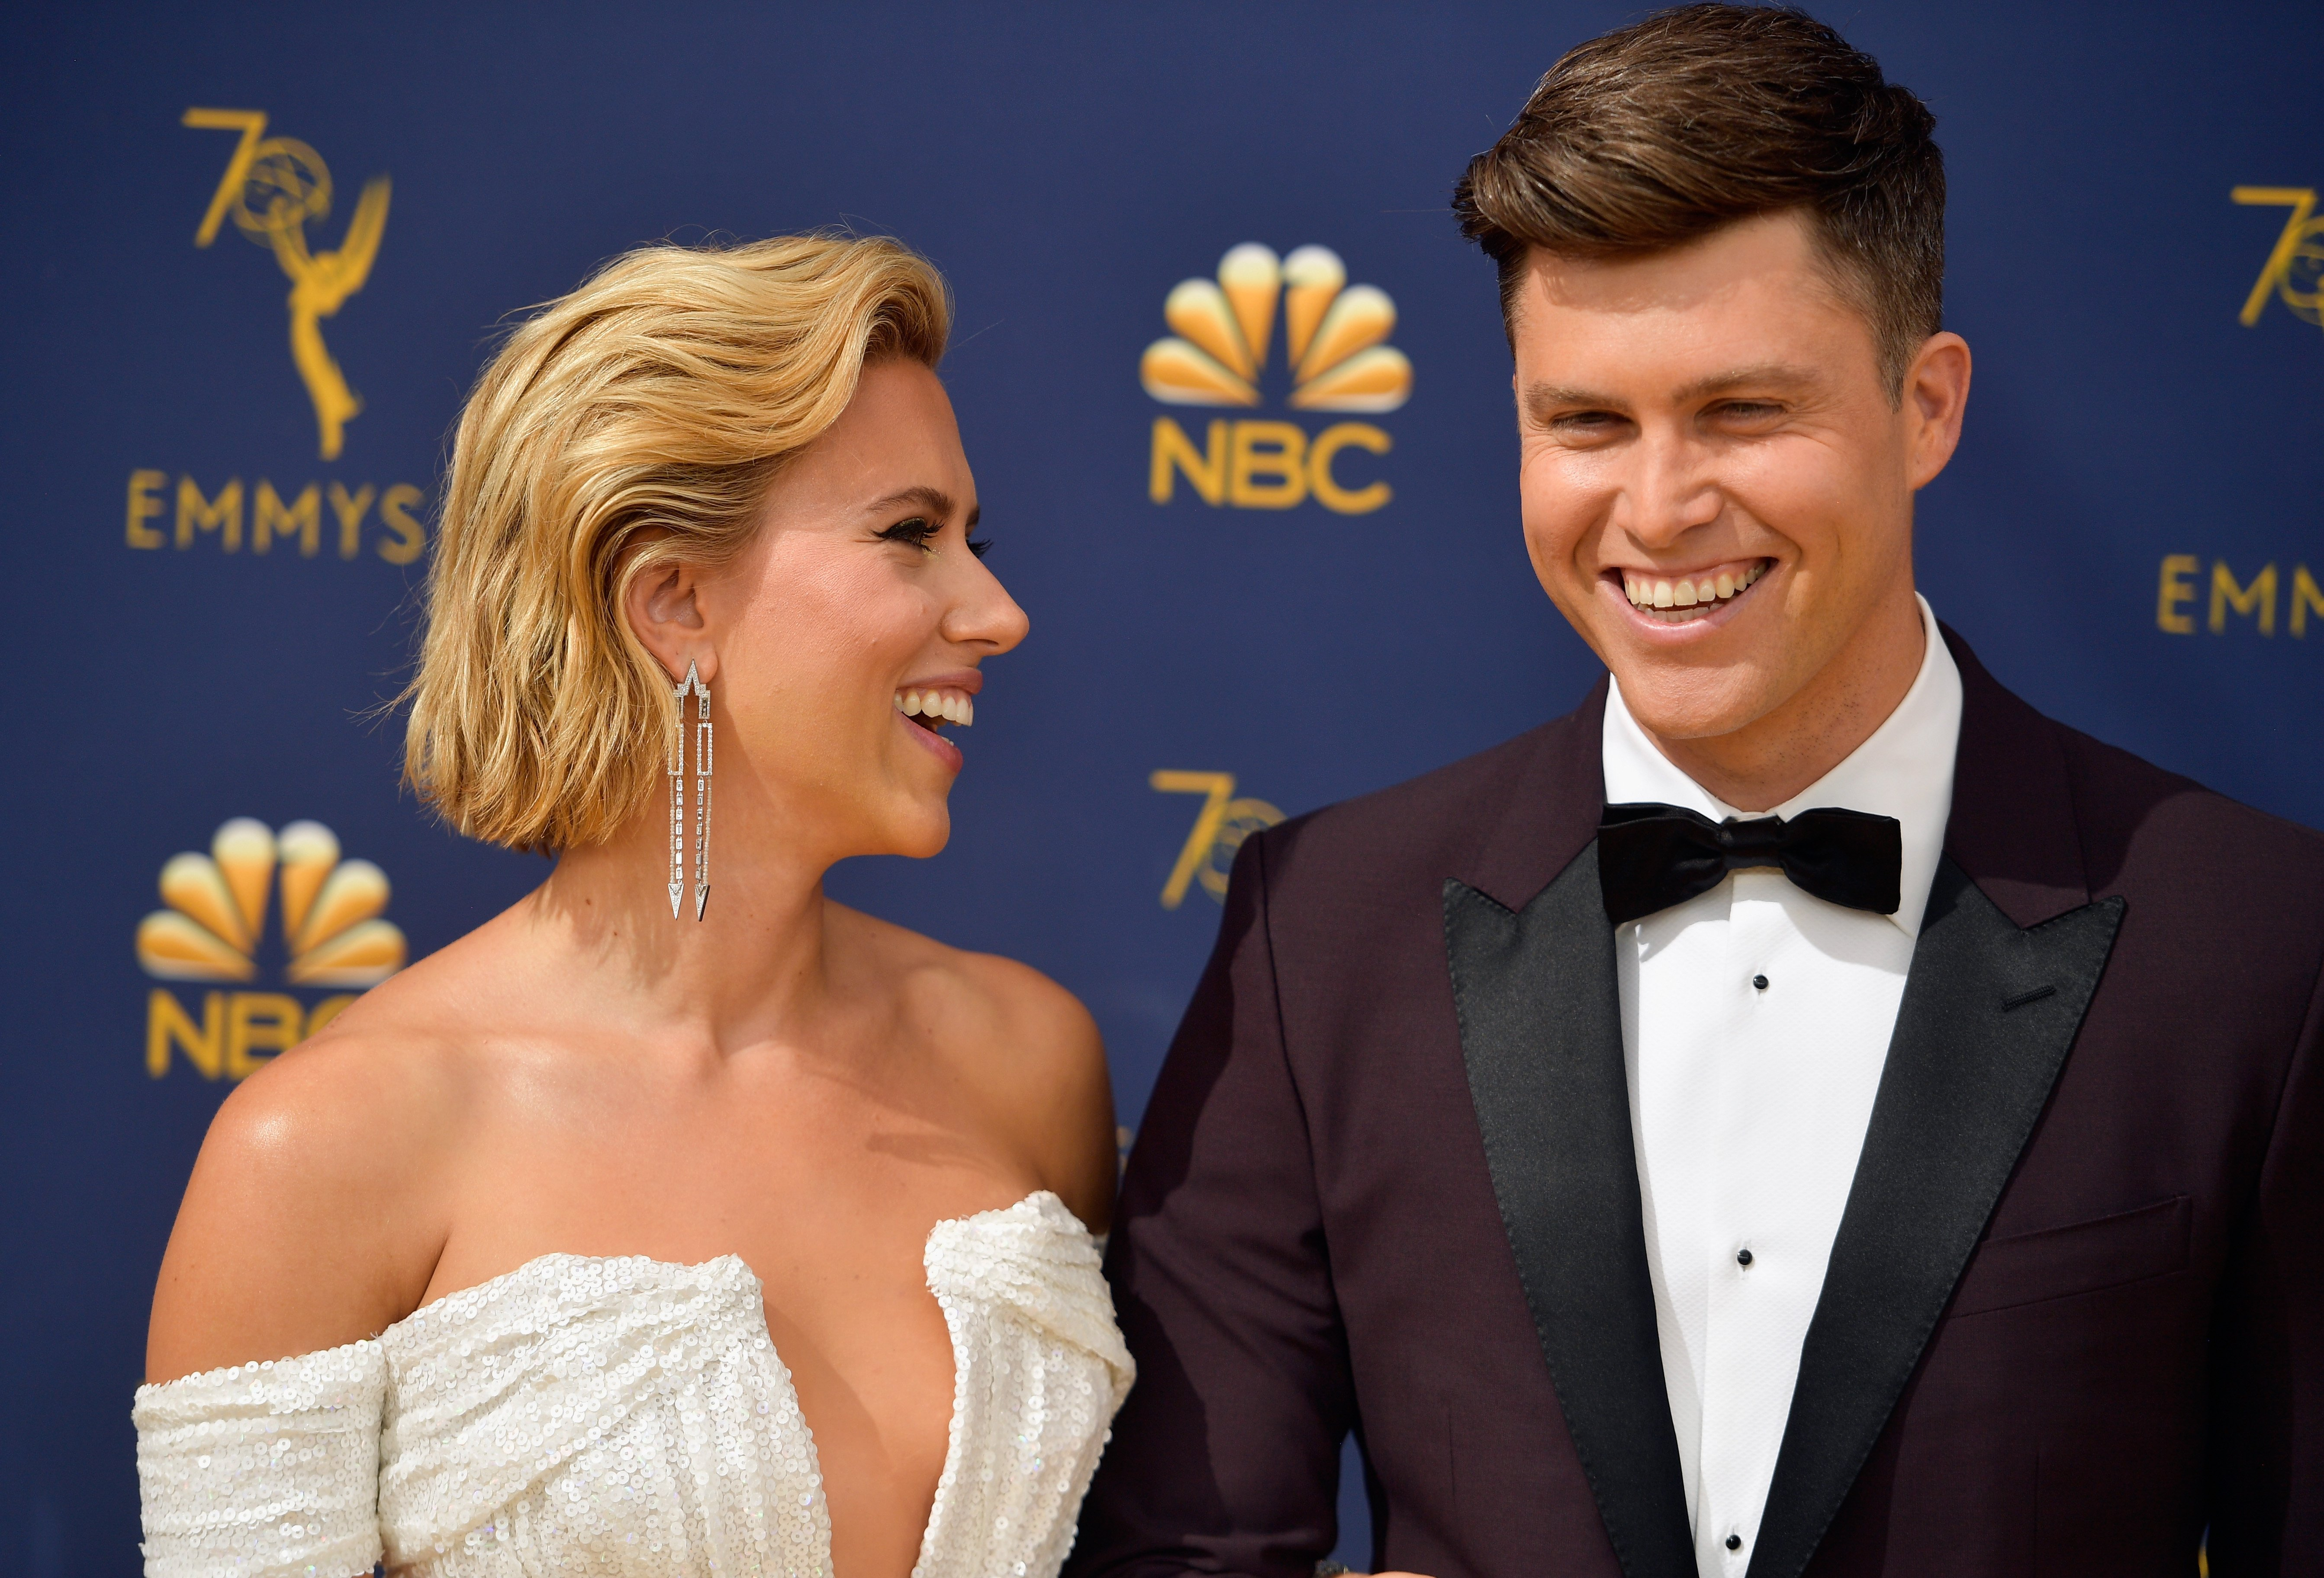 Scarlett Johansson and Colin Jost at the 70th Emmy Awards at Microsoft Theater on September 17, 2018 in Los Angeles, California | Photo: Getty Images